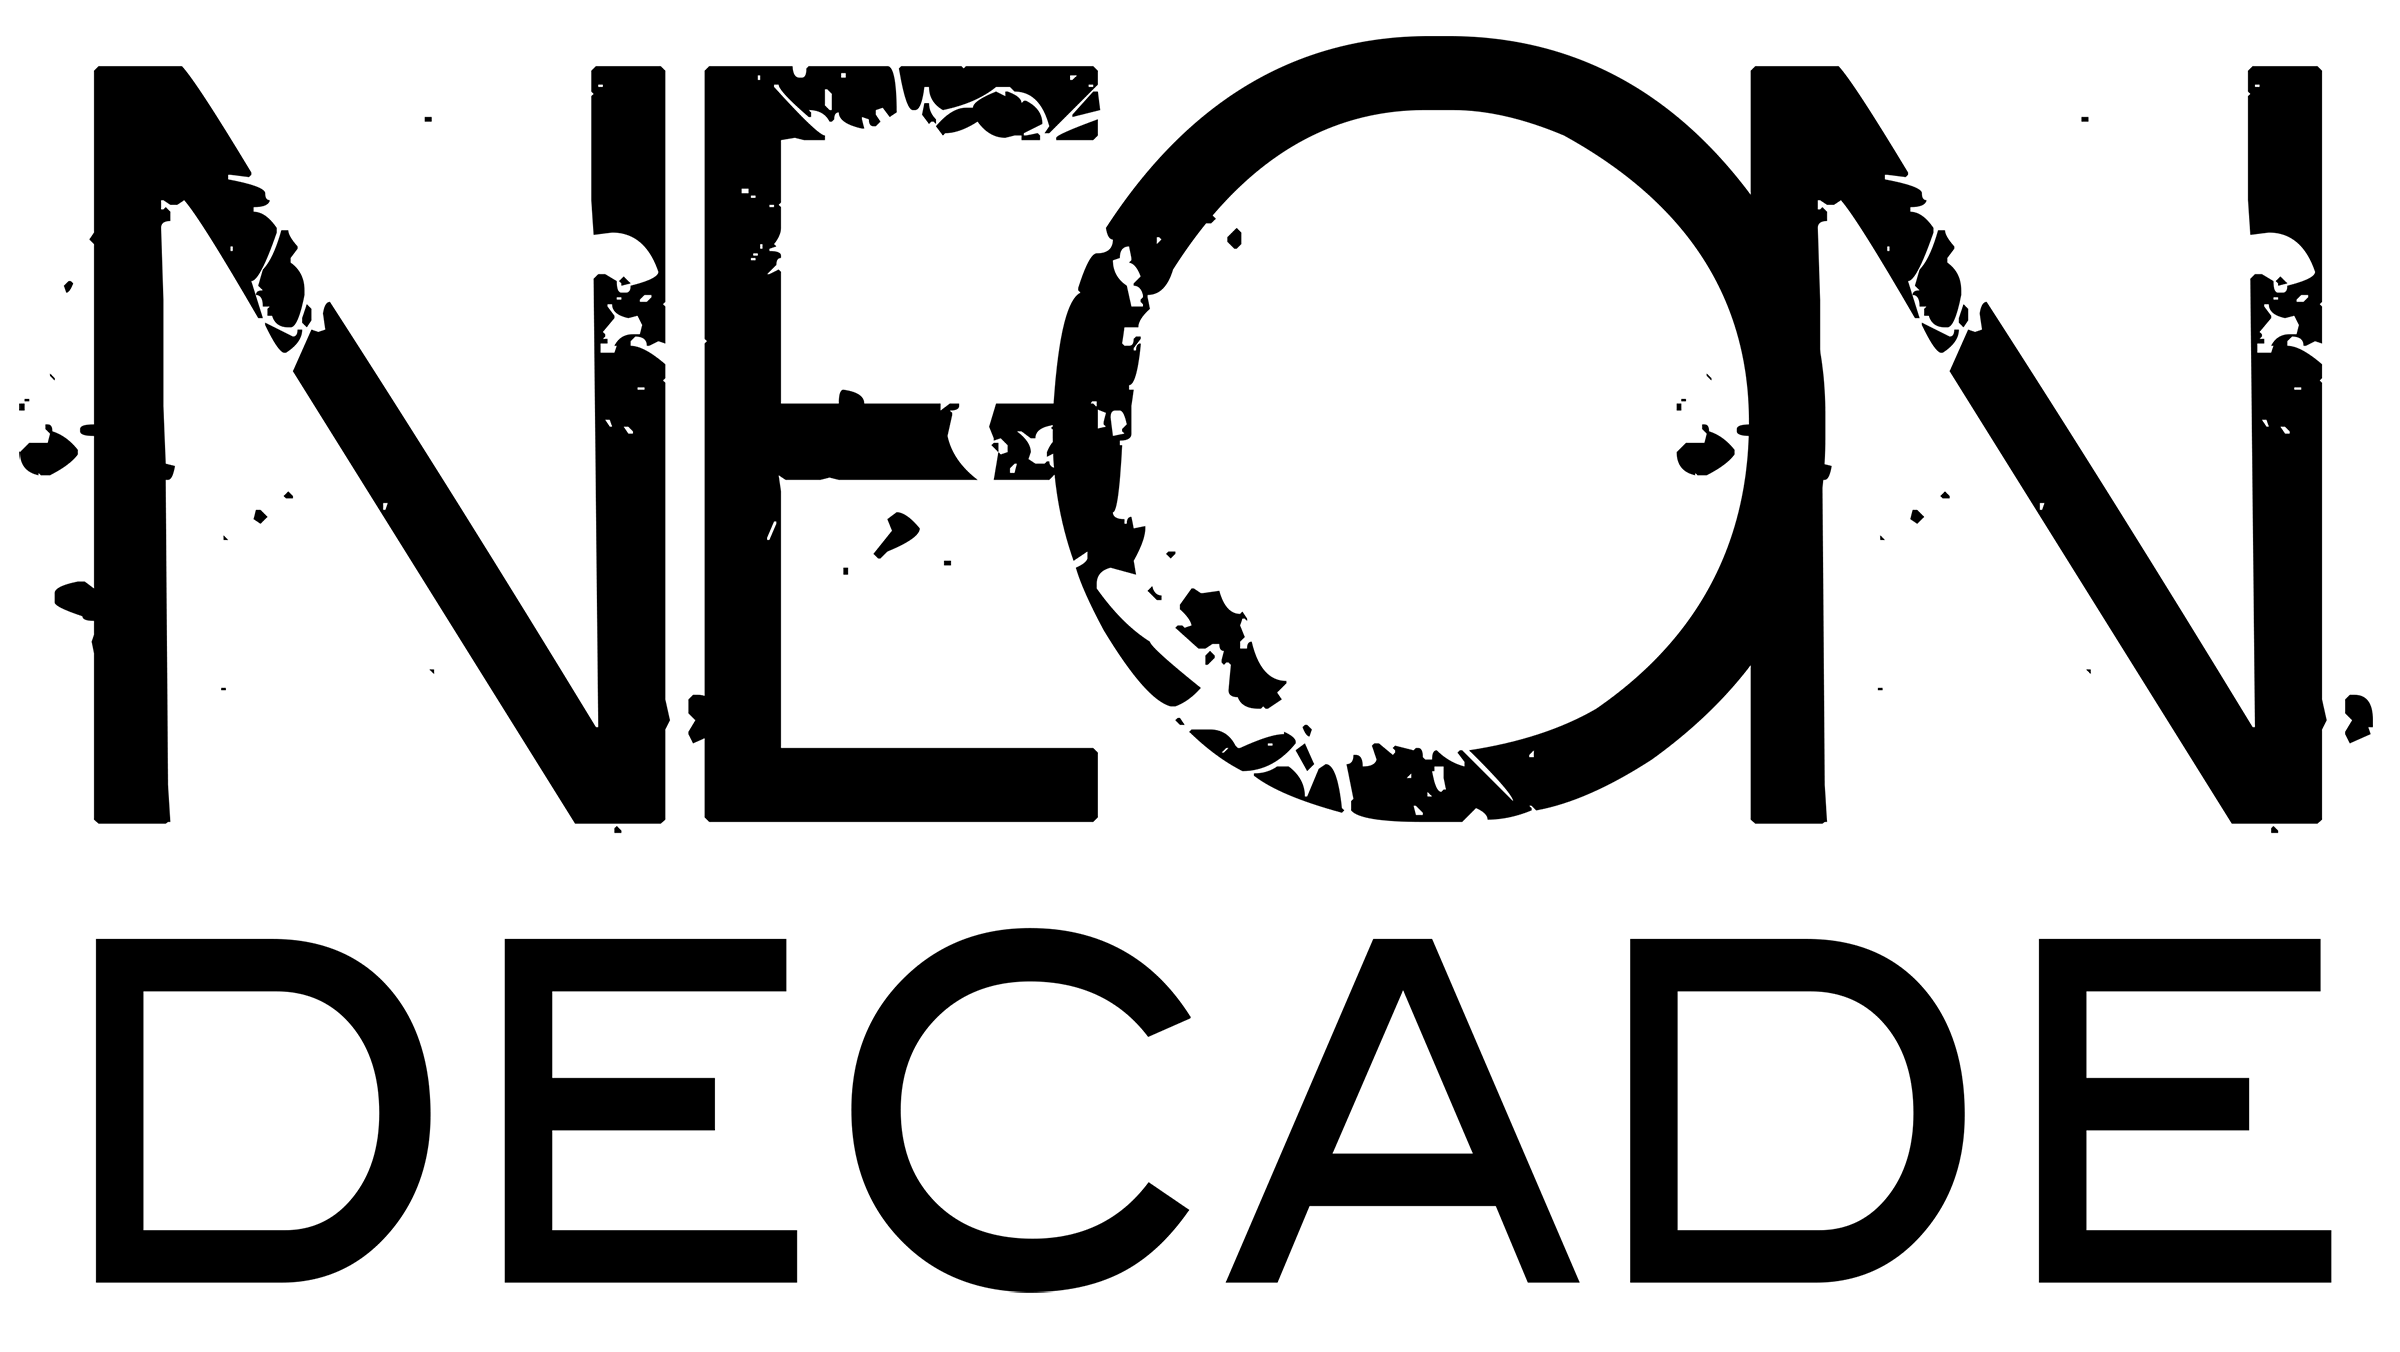 NeonD_LOGO.png